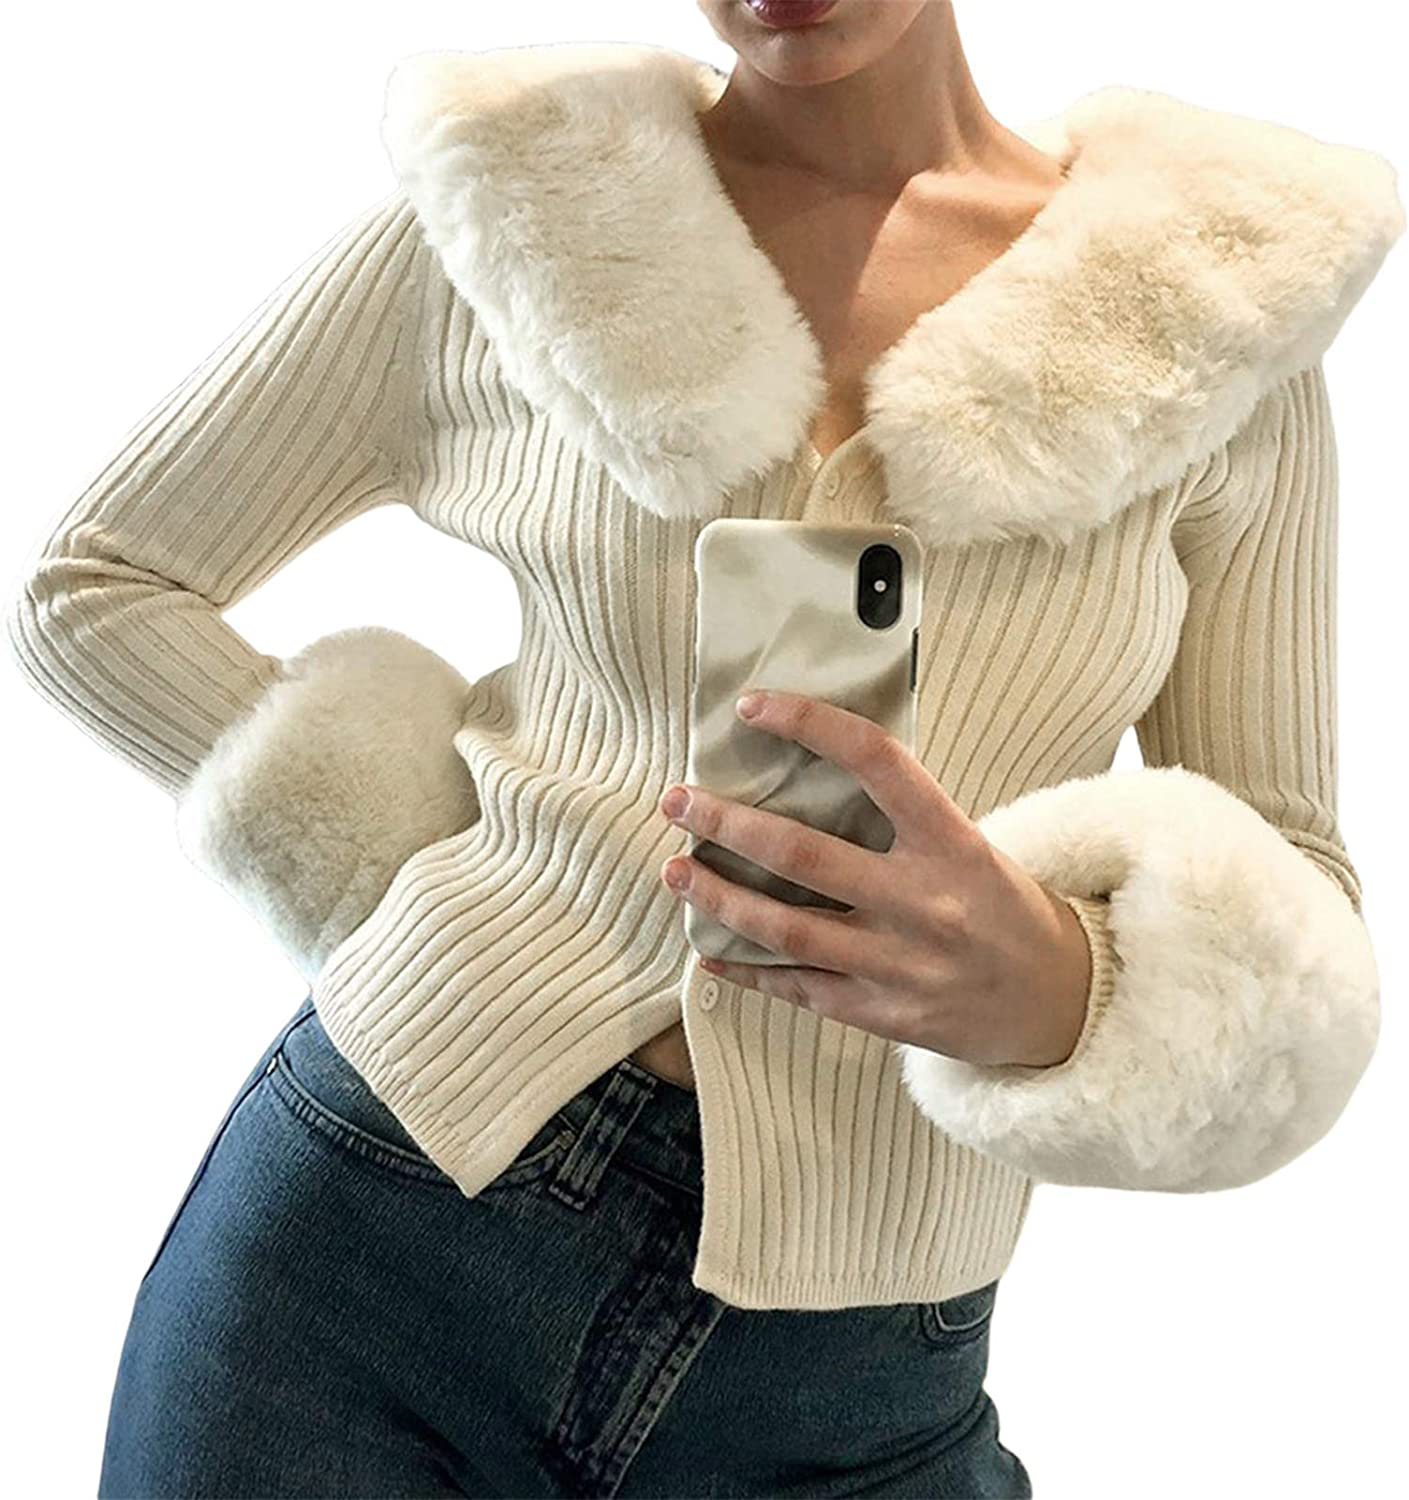 Women's Fluffy Long Sleeve V-Neck Cropped Knit Cardigan Sweater Solid Pullover Tops with Faux Fur Trim Collar Cuffs